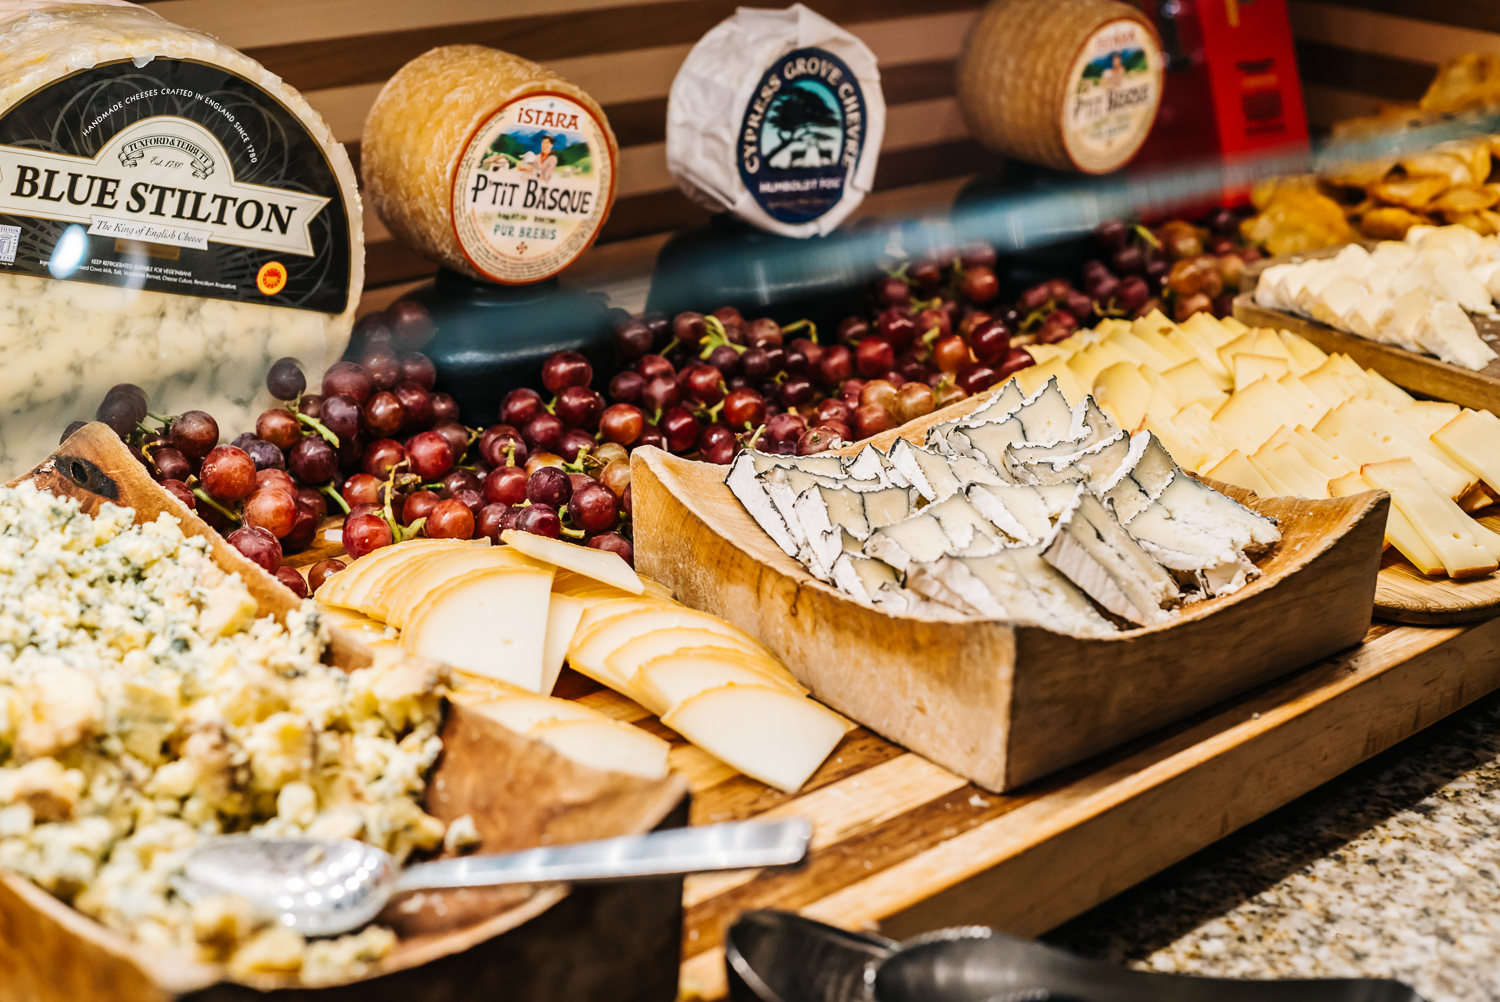 Great selection of high quality cheeses